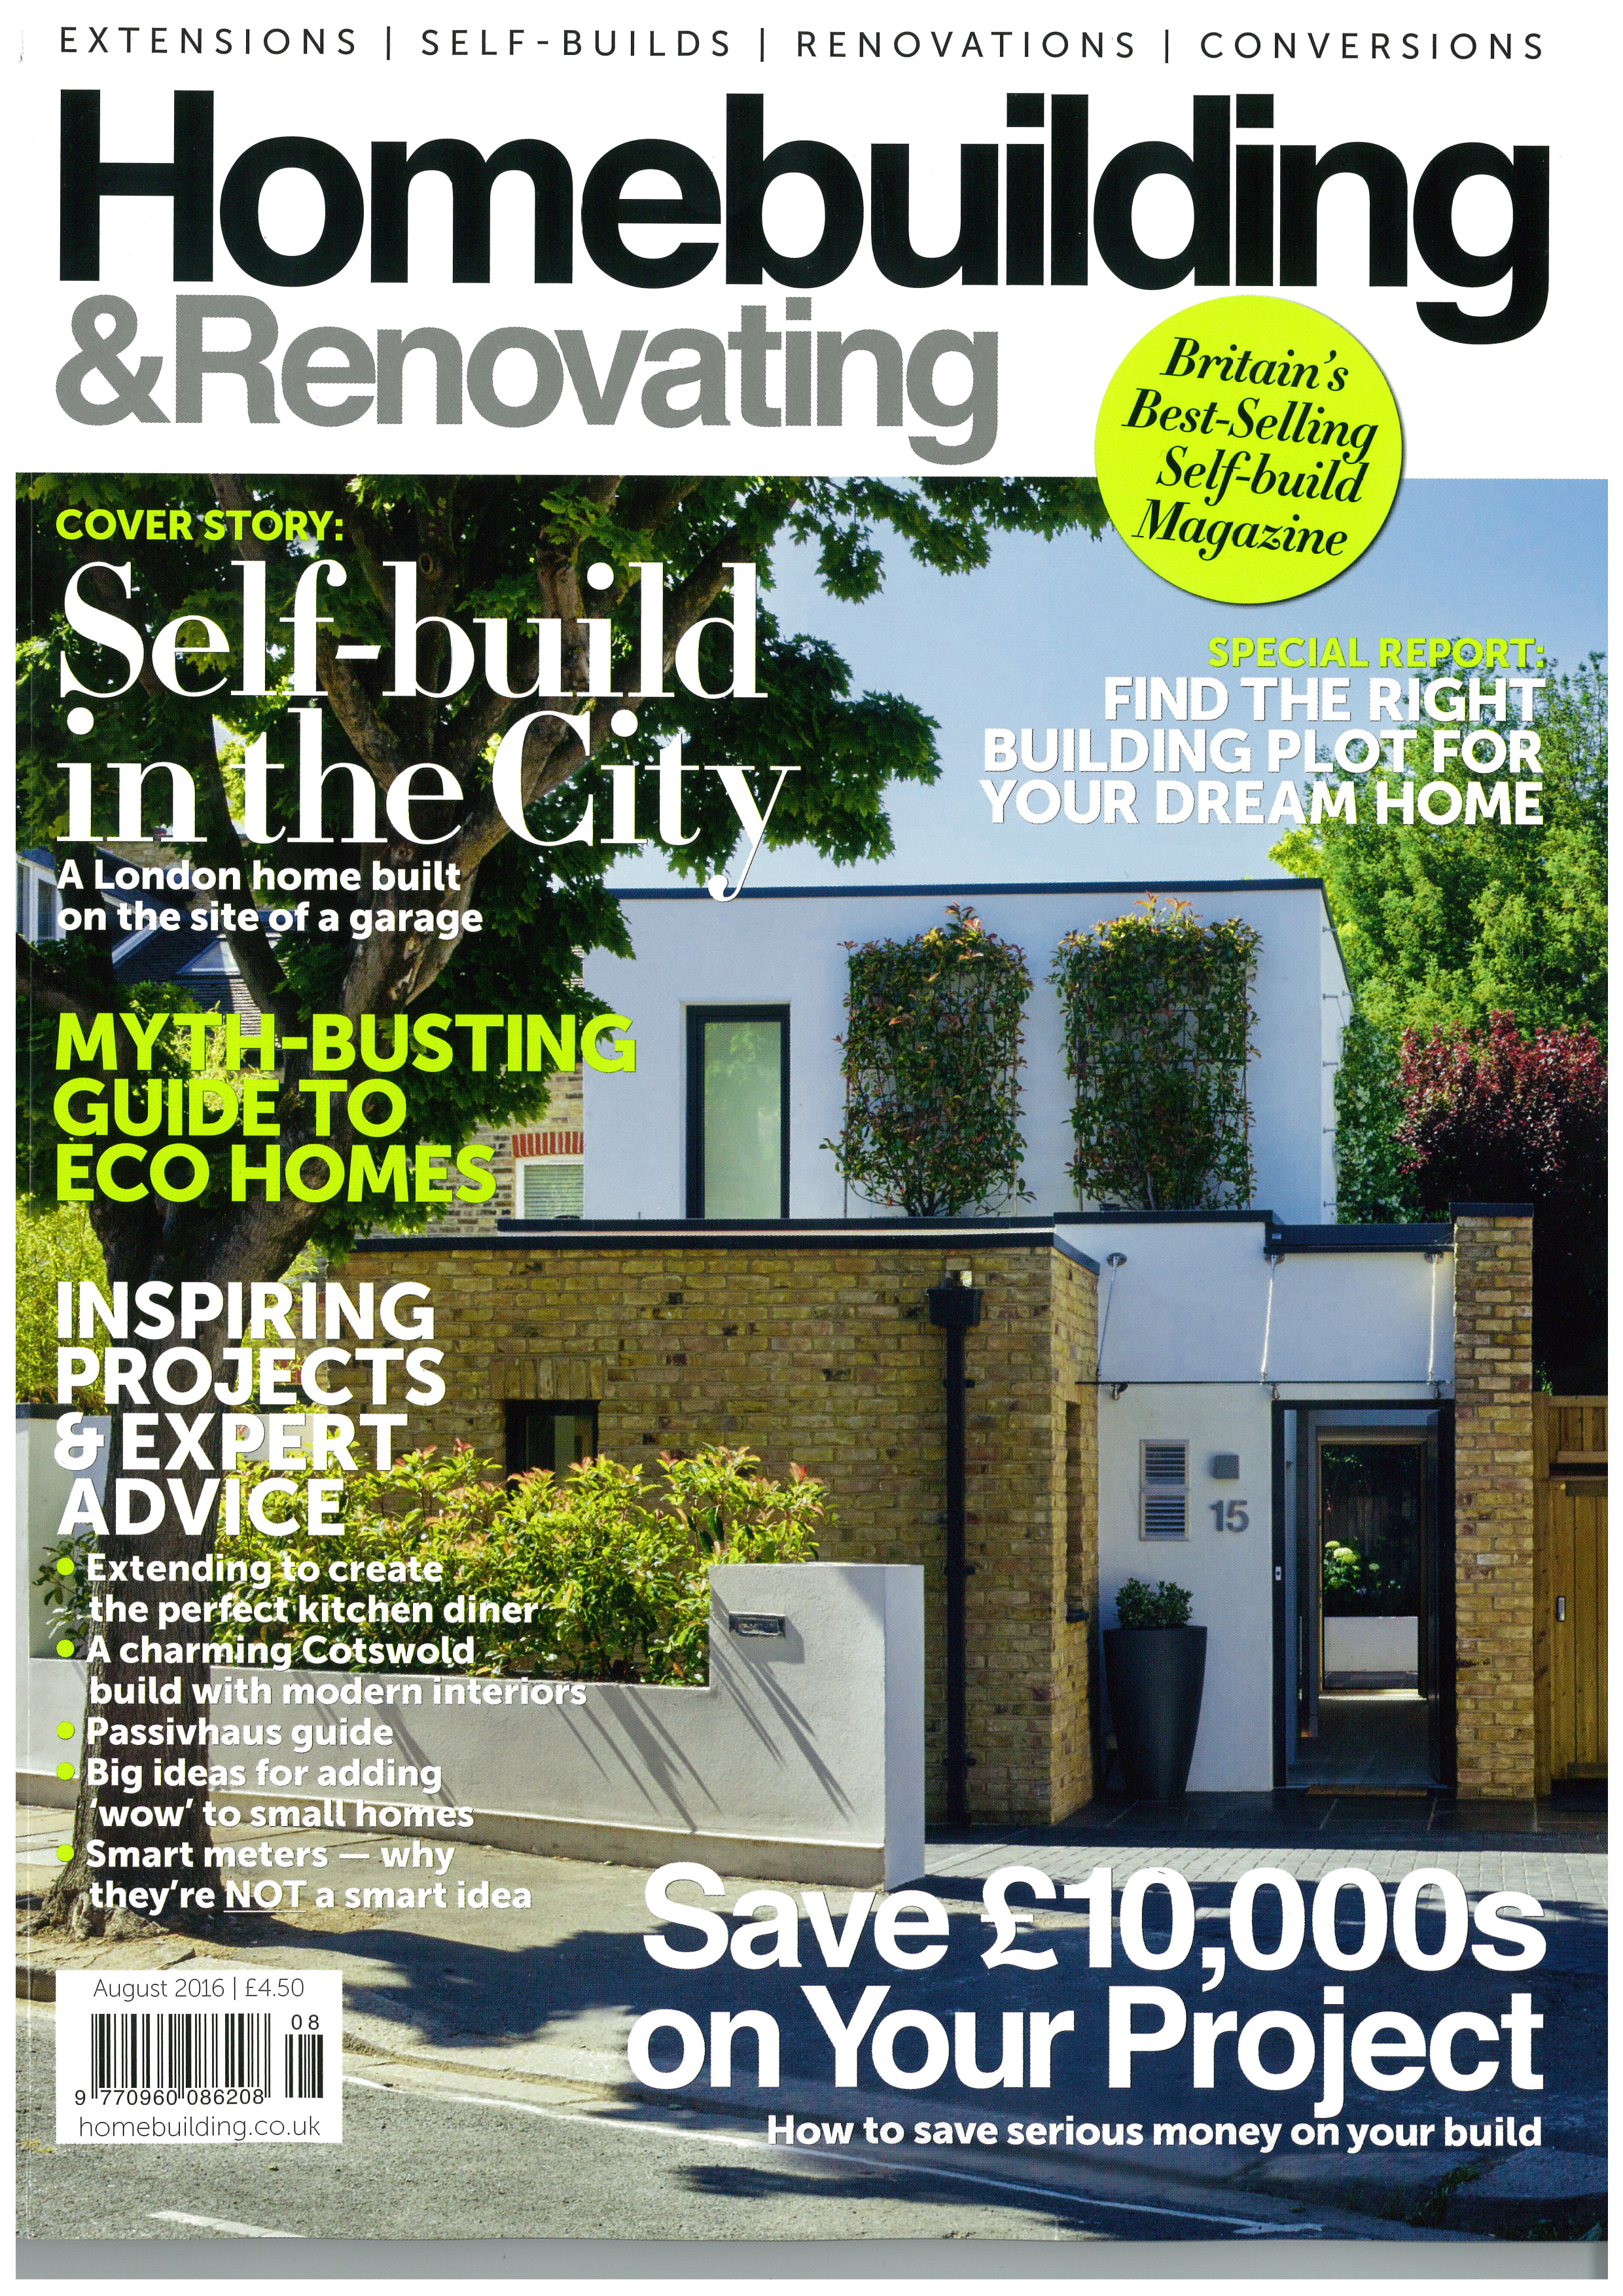 Homebuilding and Renovating Magazine, 2016